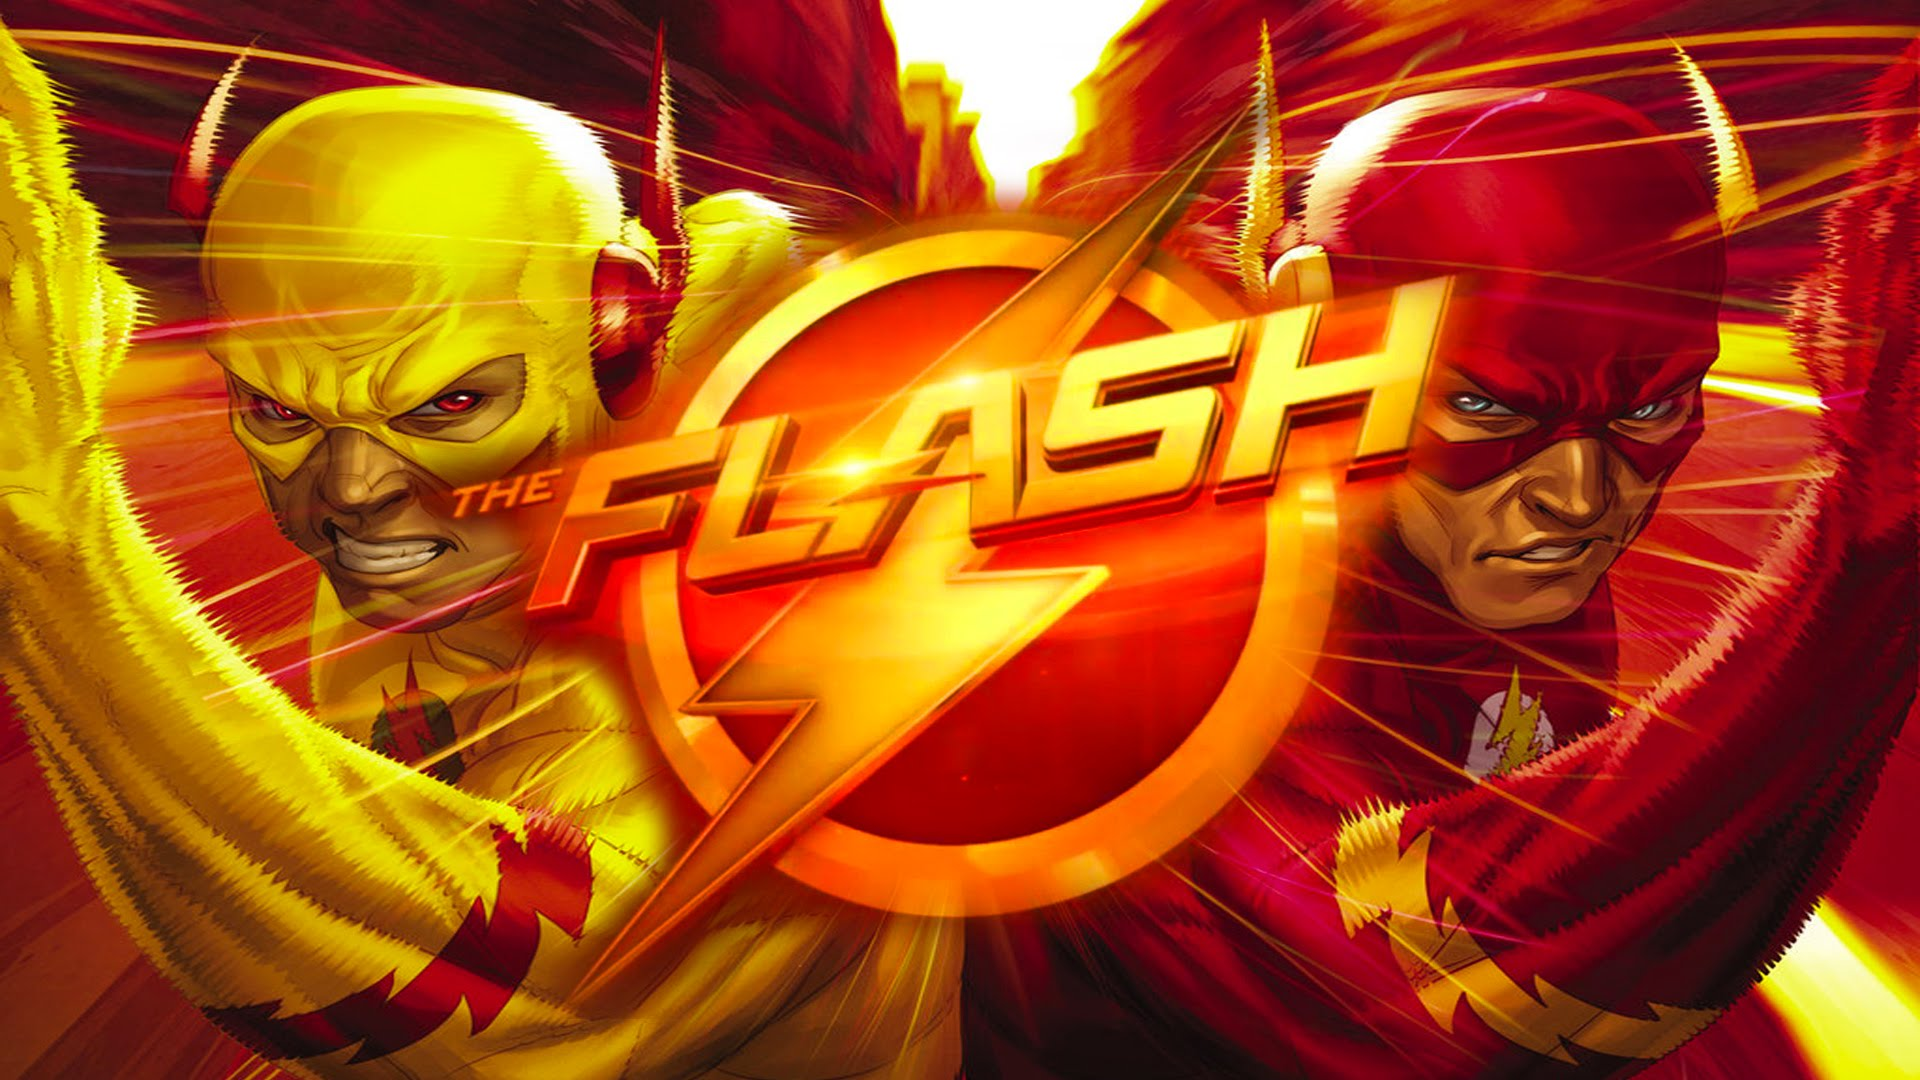 zoom and flash lego wallpaper - photo #13